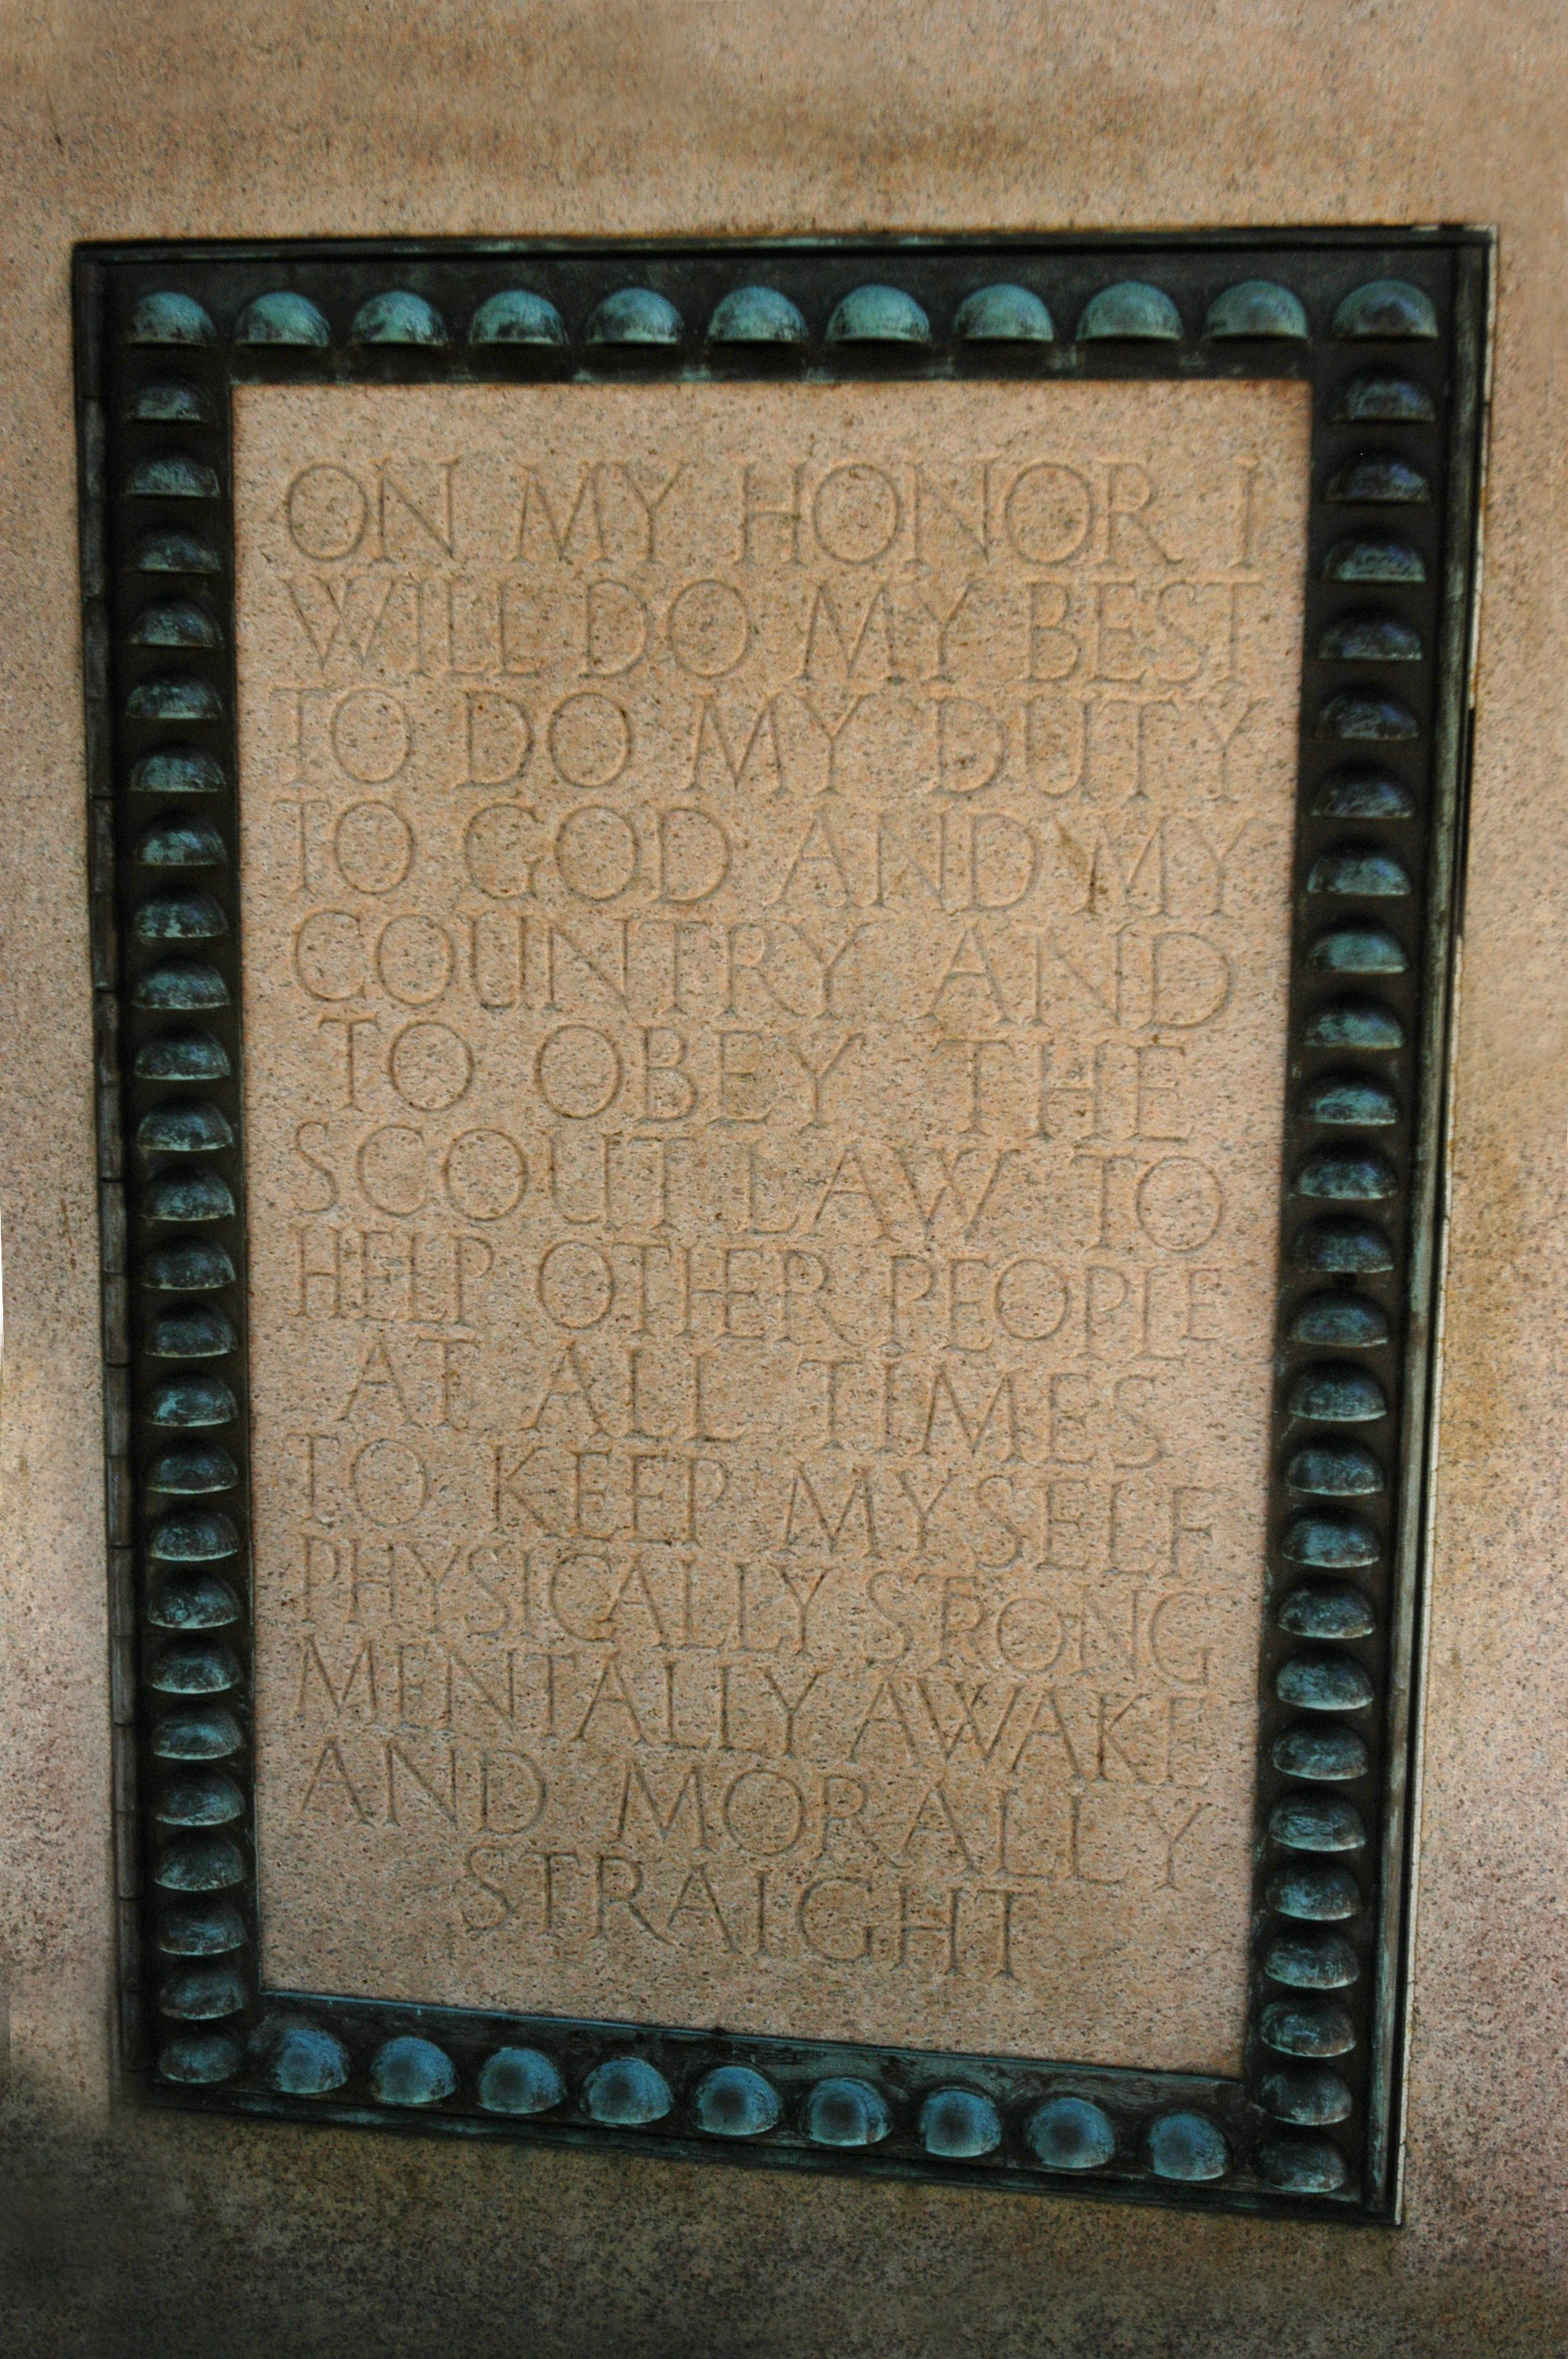 The Boy Scout oath is engraved on the pedestal of the statue